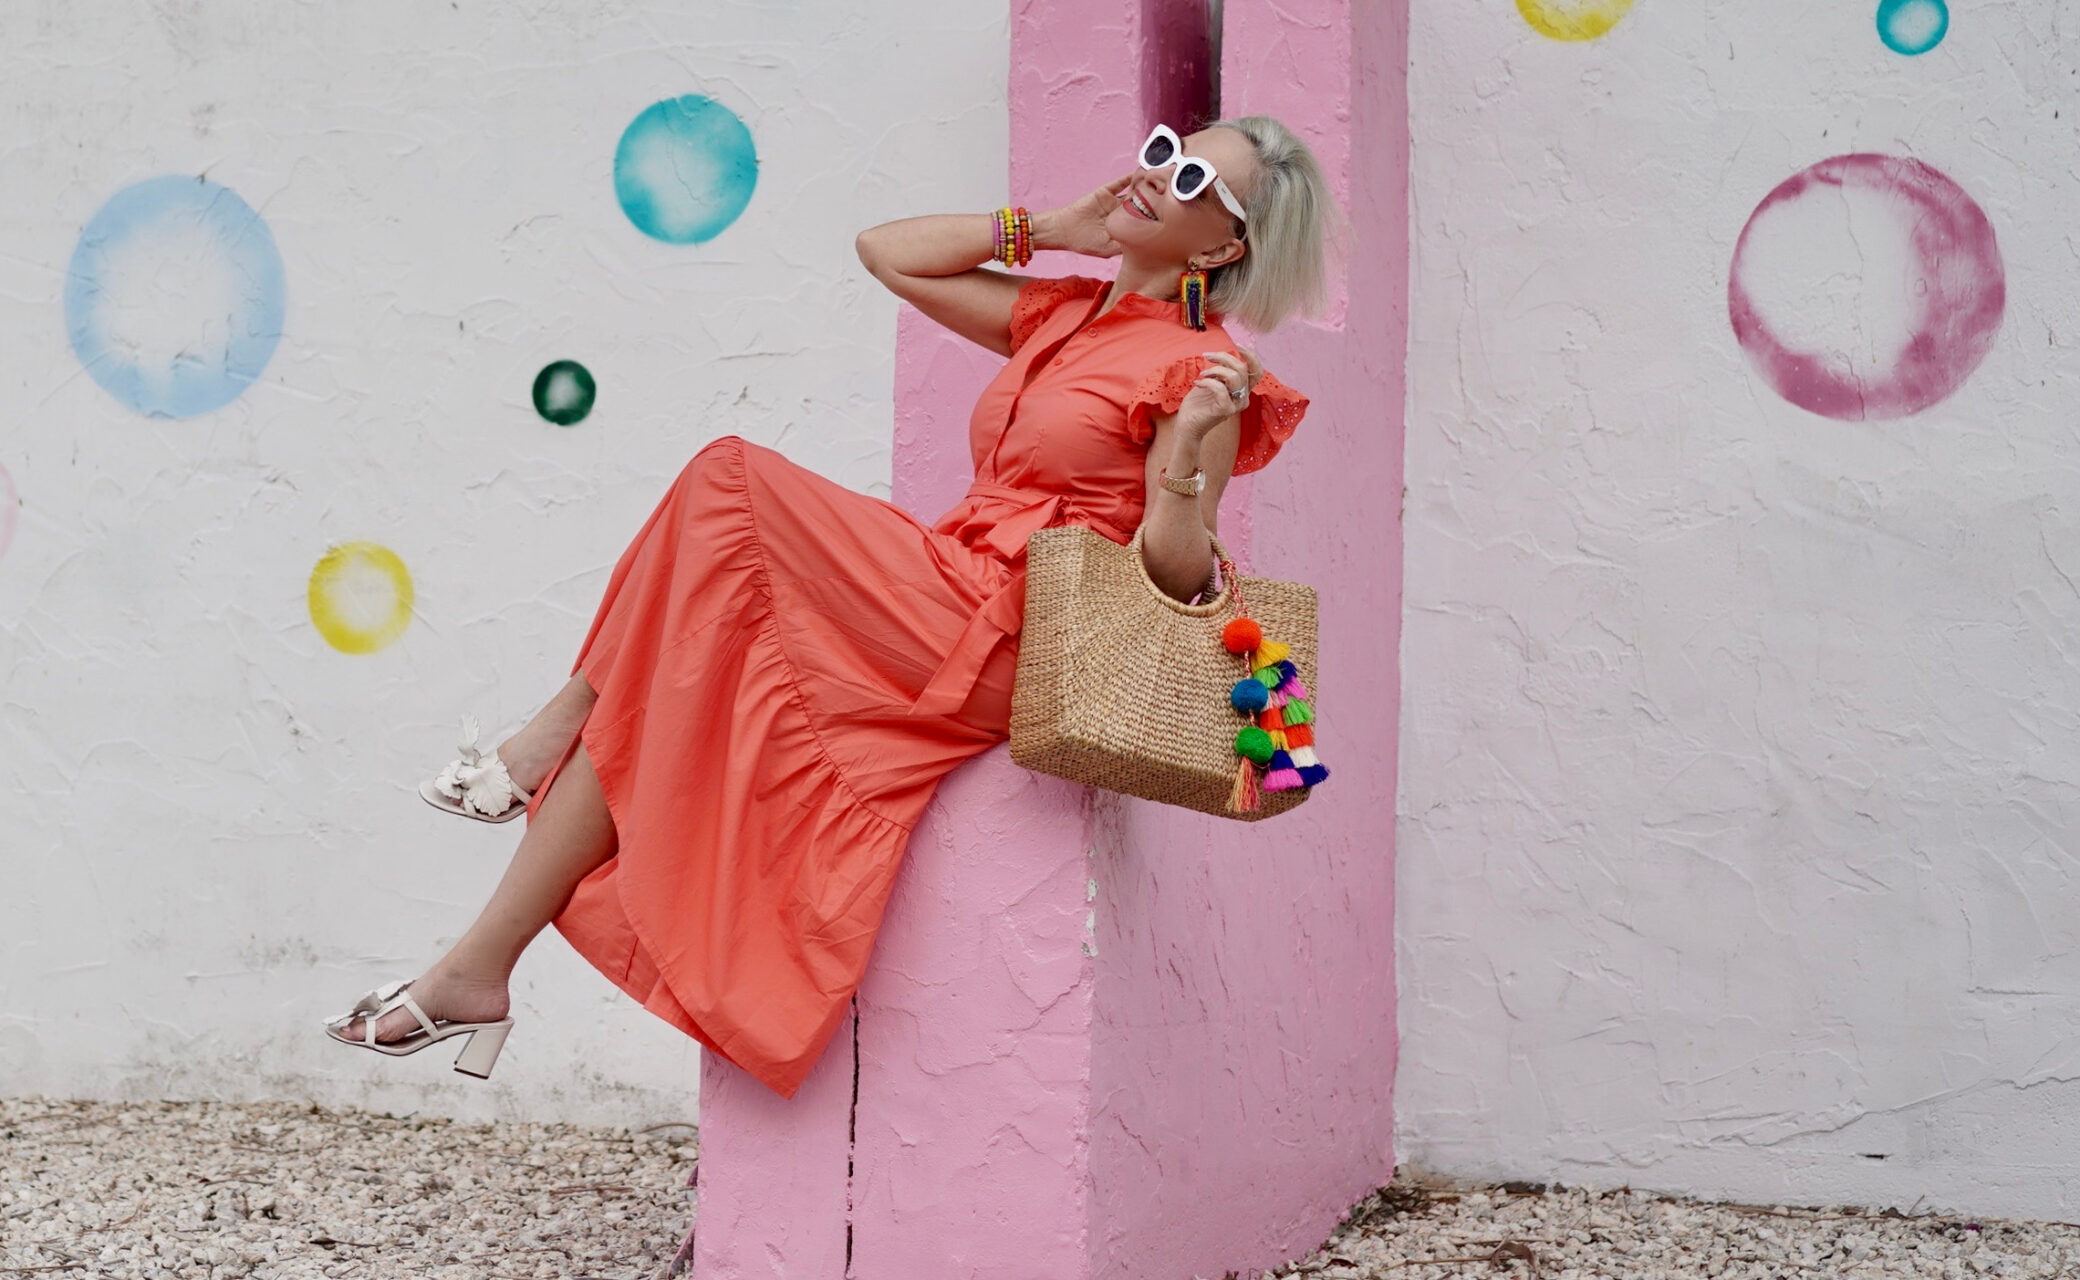 Sheree Frede of the SheShe Show stinnon on a pink and white wall wearing a bright orange maxi dress